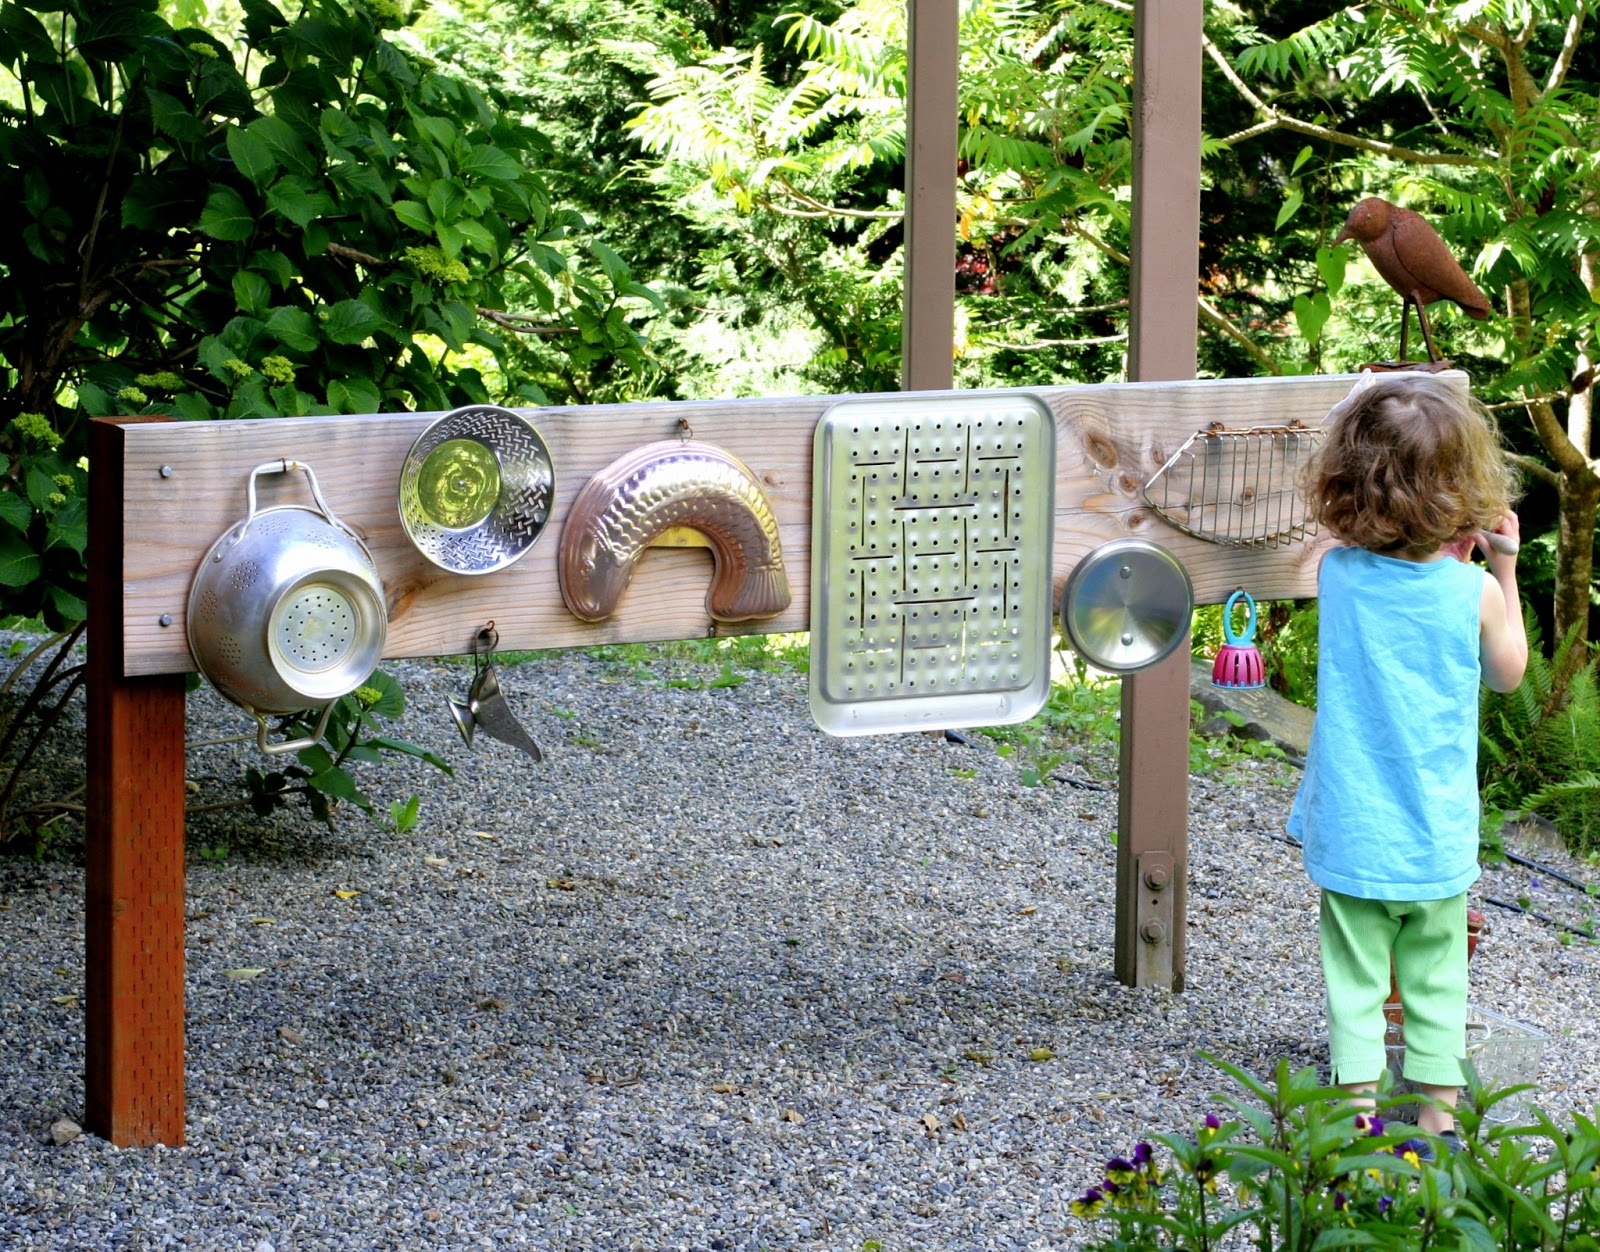 7 Fun Backyard Kids Play Space Ideas For This Summer Momooze in 11 Smart Tricks of How to Build Fun Backyard Ideas For Kids